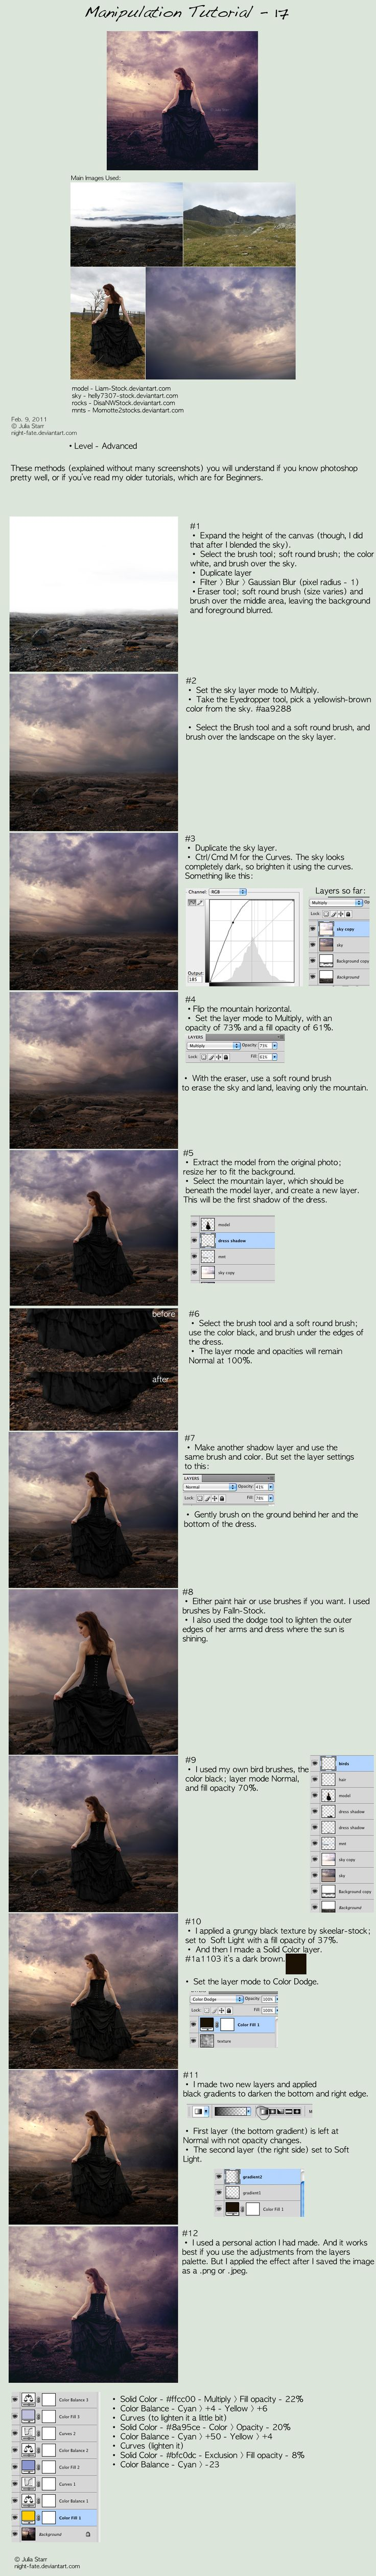 deviantART: More Like photo edit tutorial - 6 by `night-fate